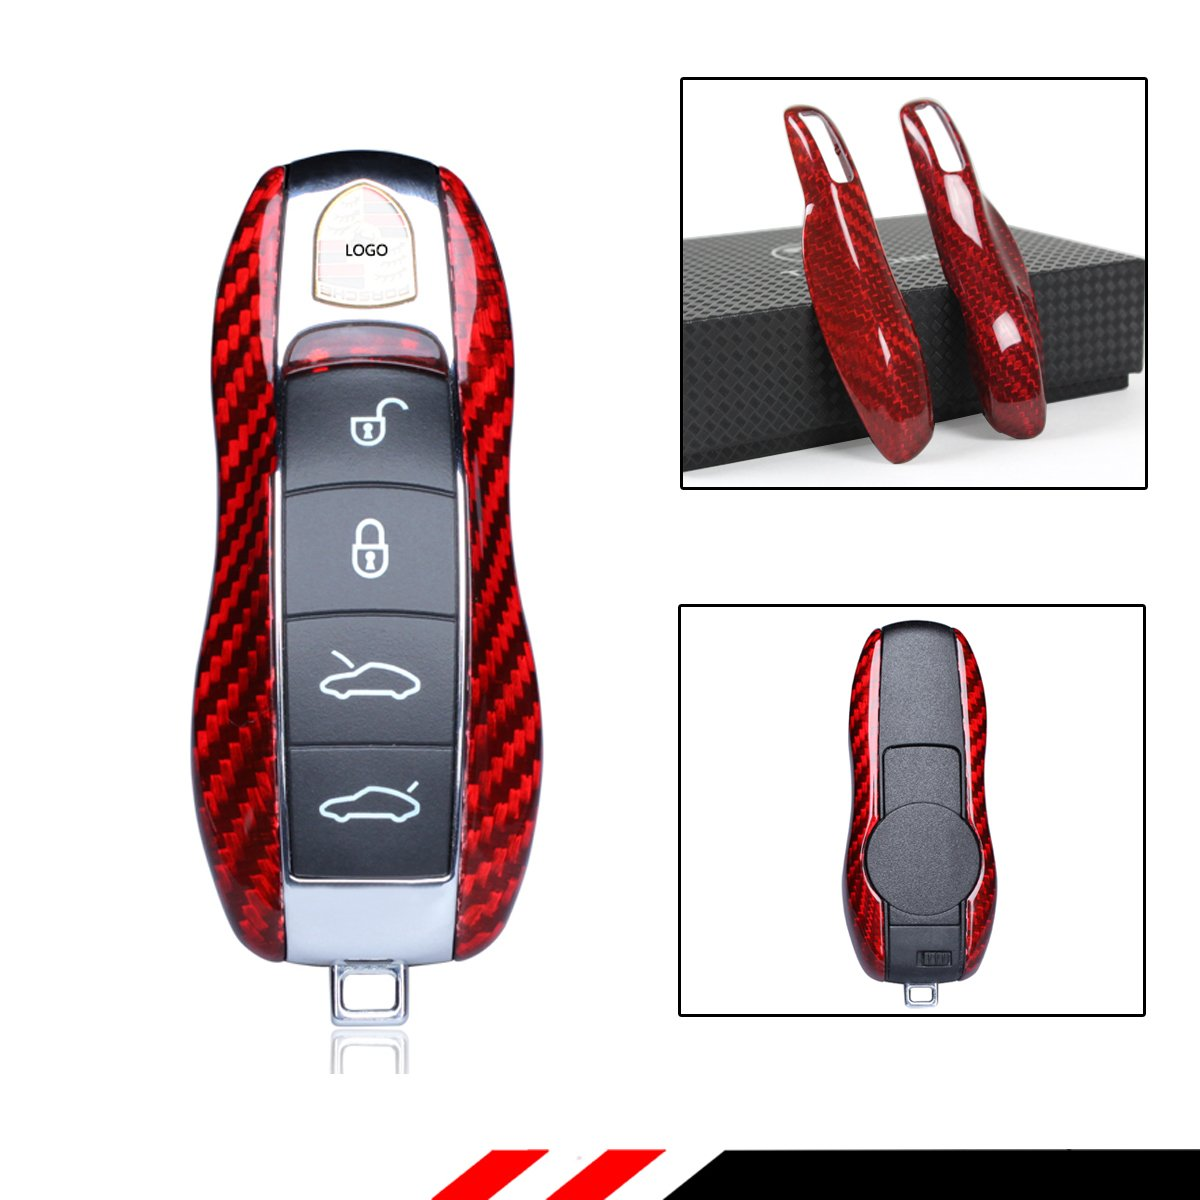 Cuztom Tuning Luxury RED Real Carbon Fiber SNAP ON Replacement CASE for Porsche Key FOB Remote